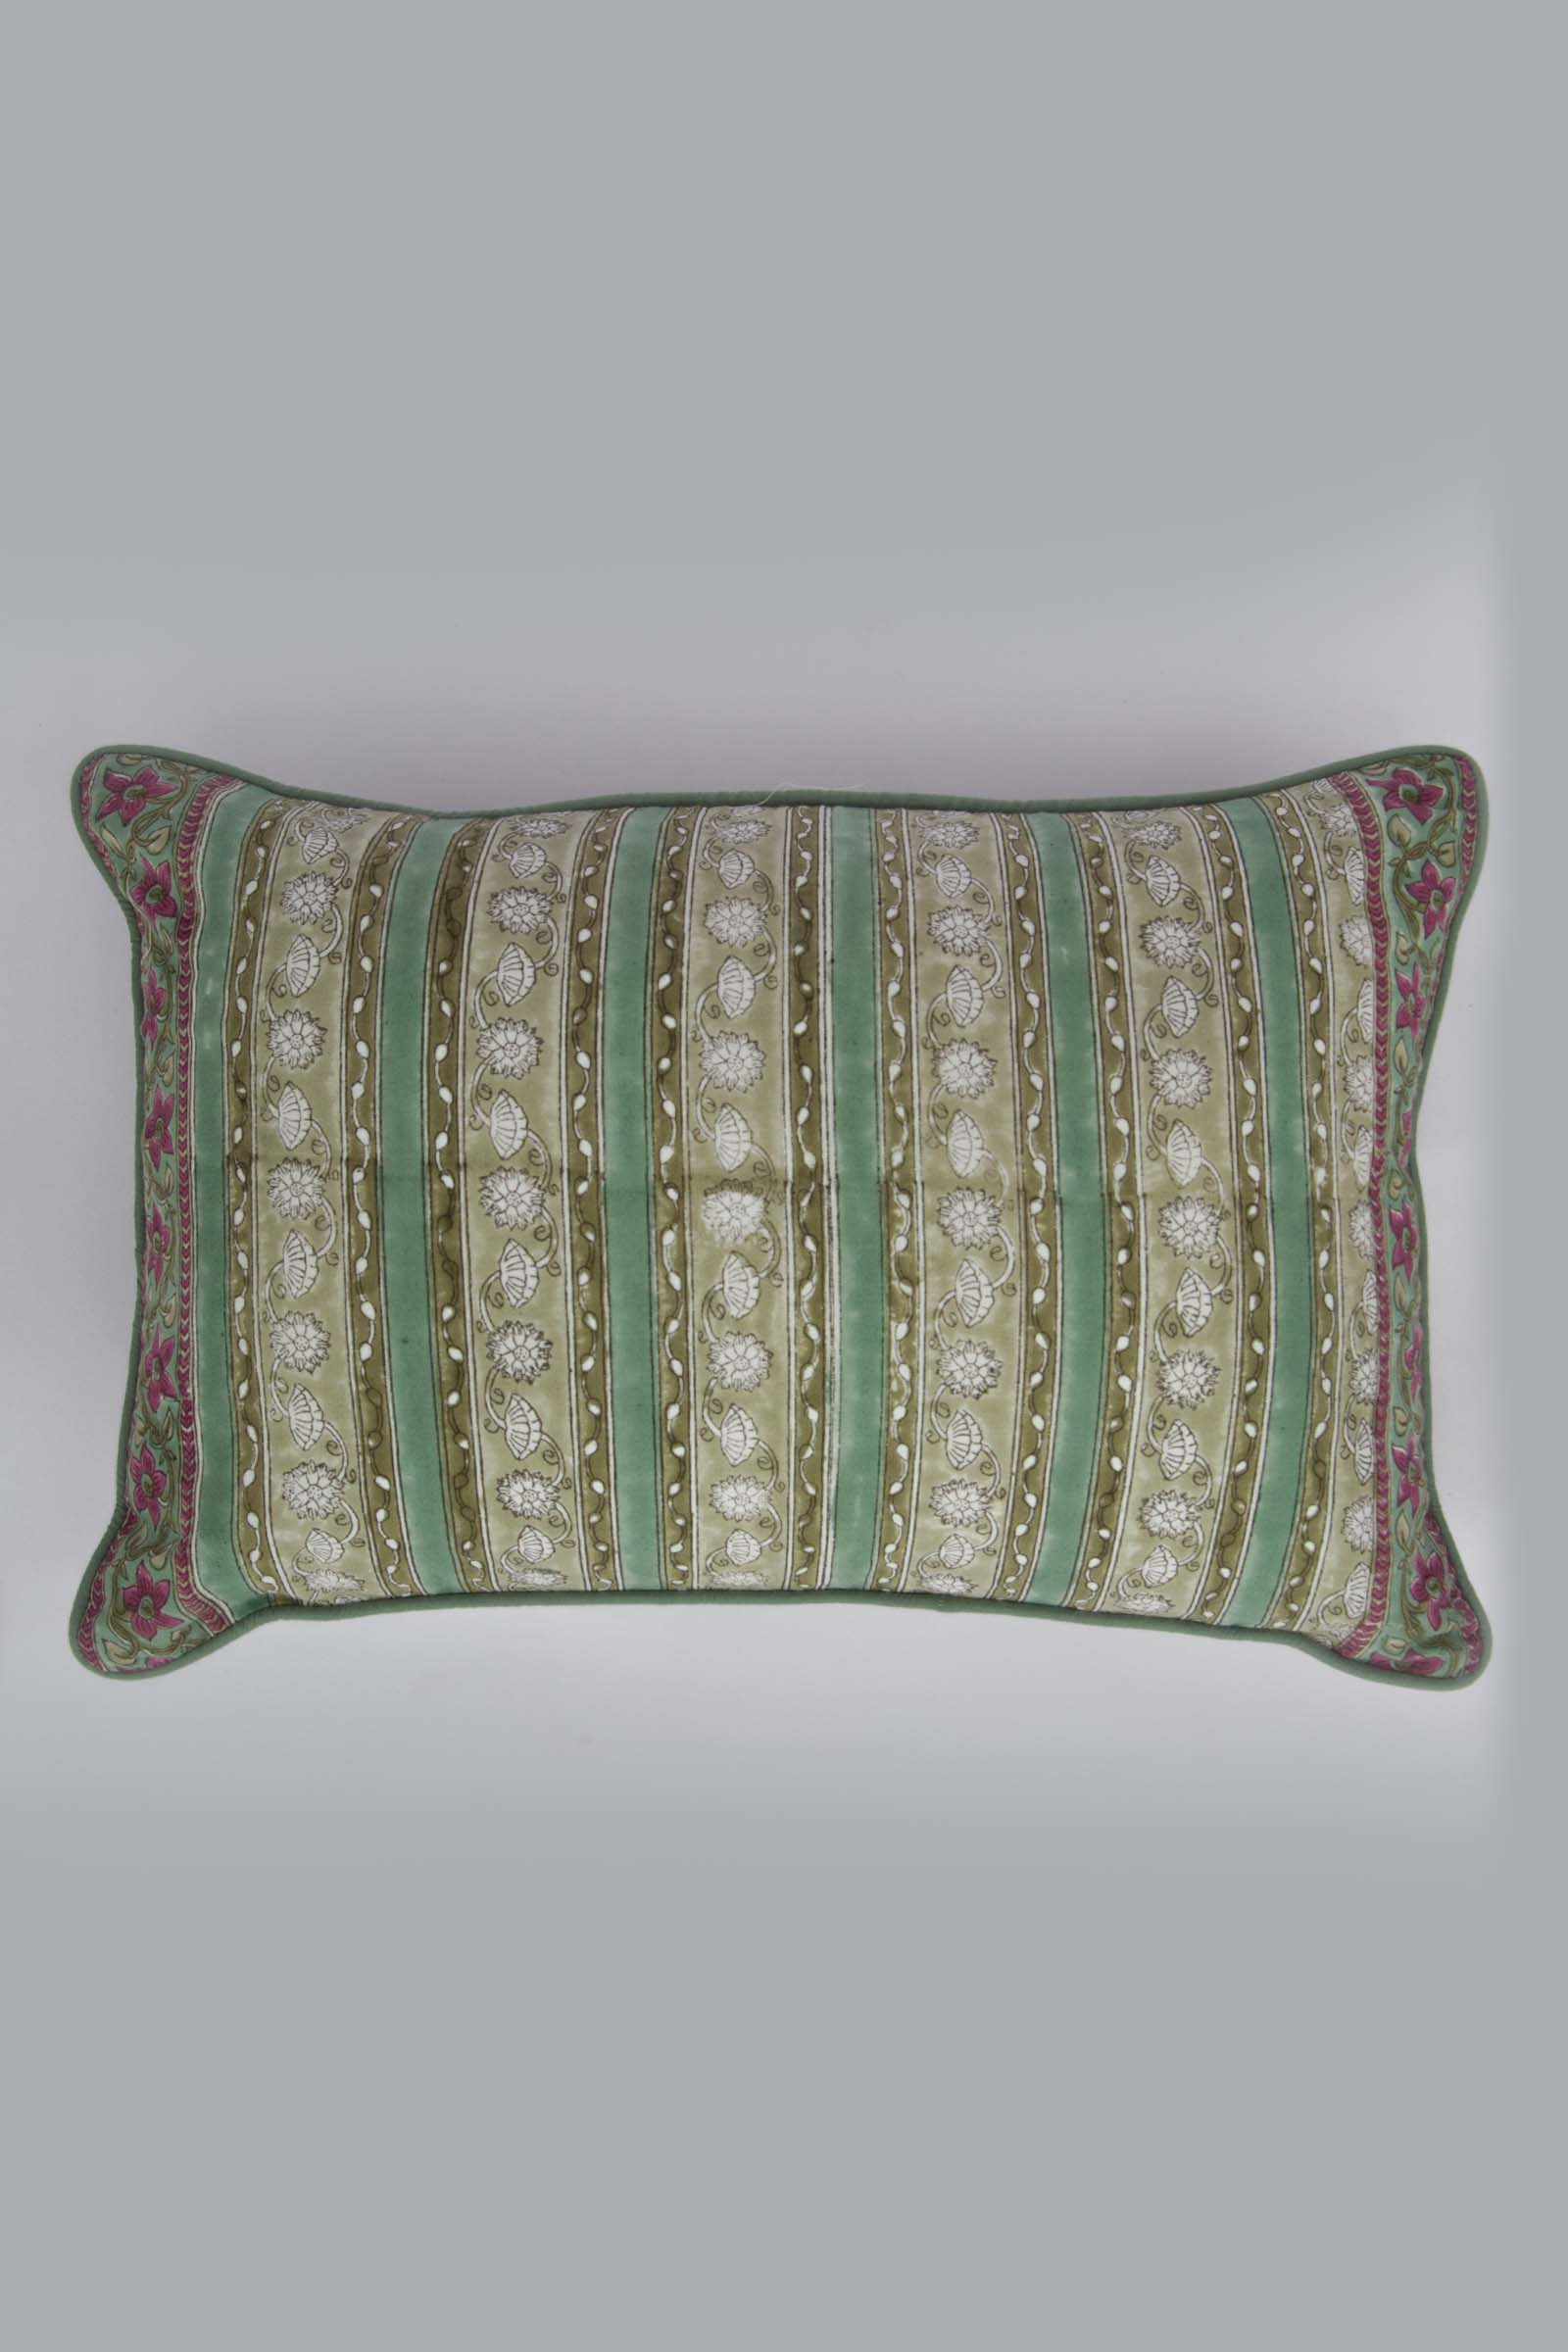 Kamalbaadi 12*18 Cushion Cover